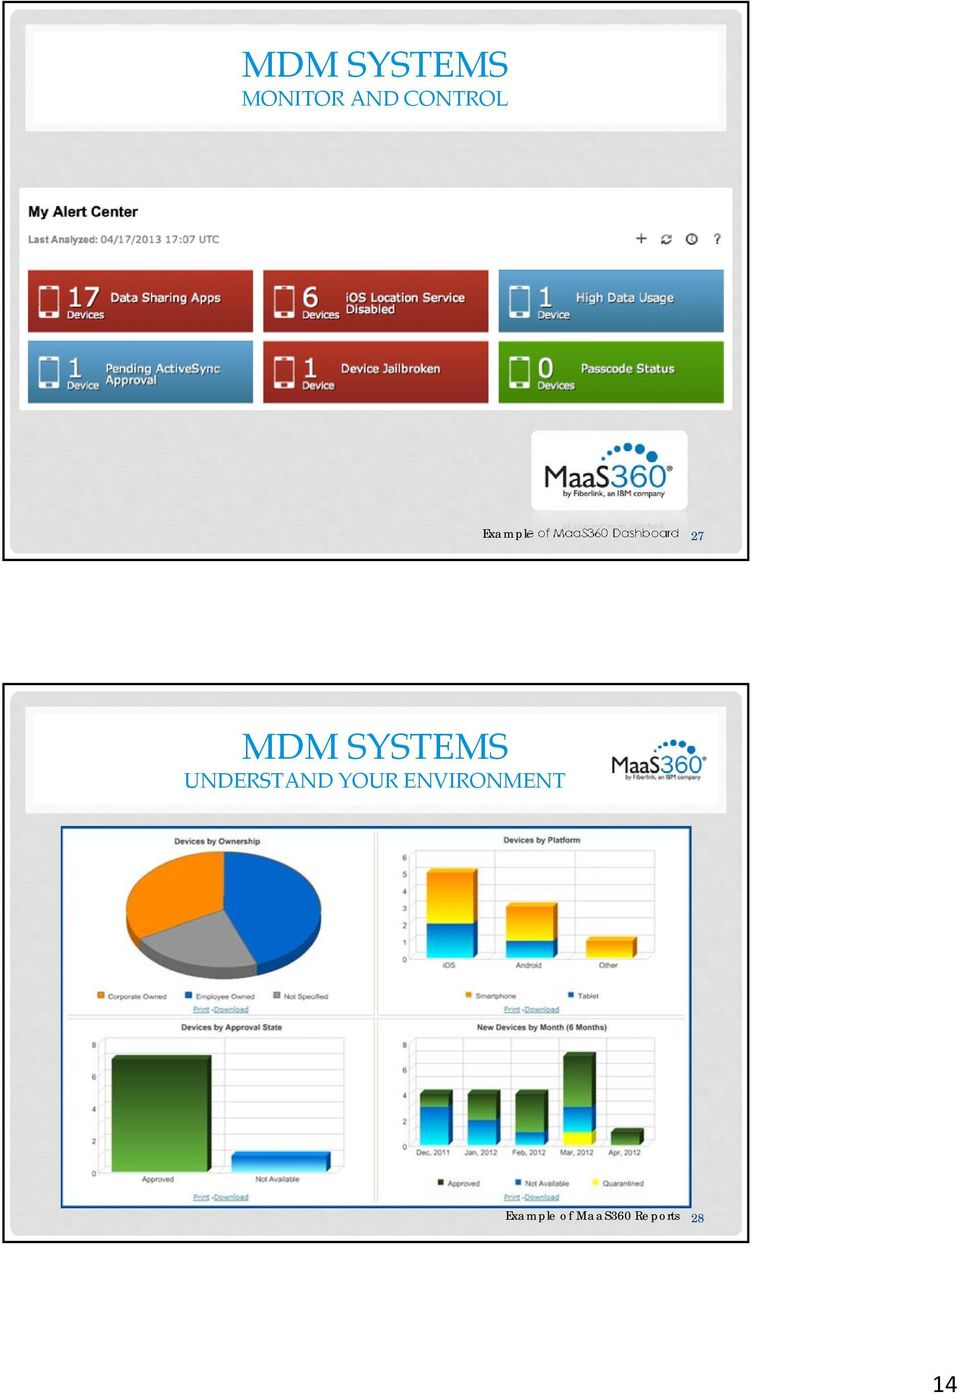 MDM SYSTEMS UNDERSTAND YOUR